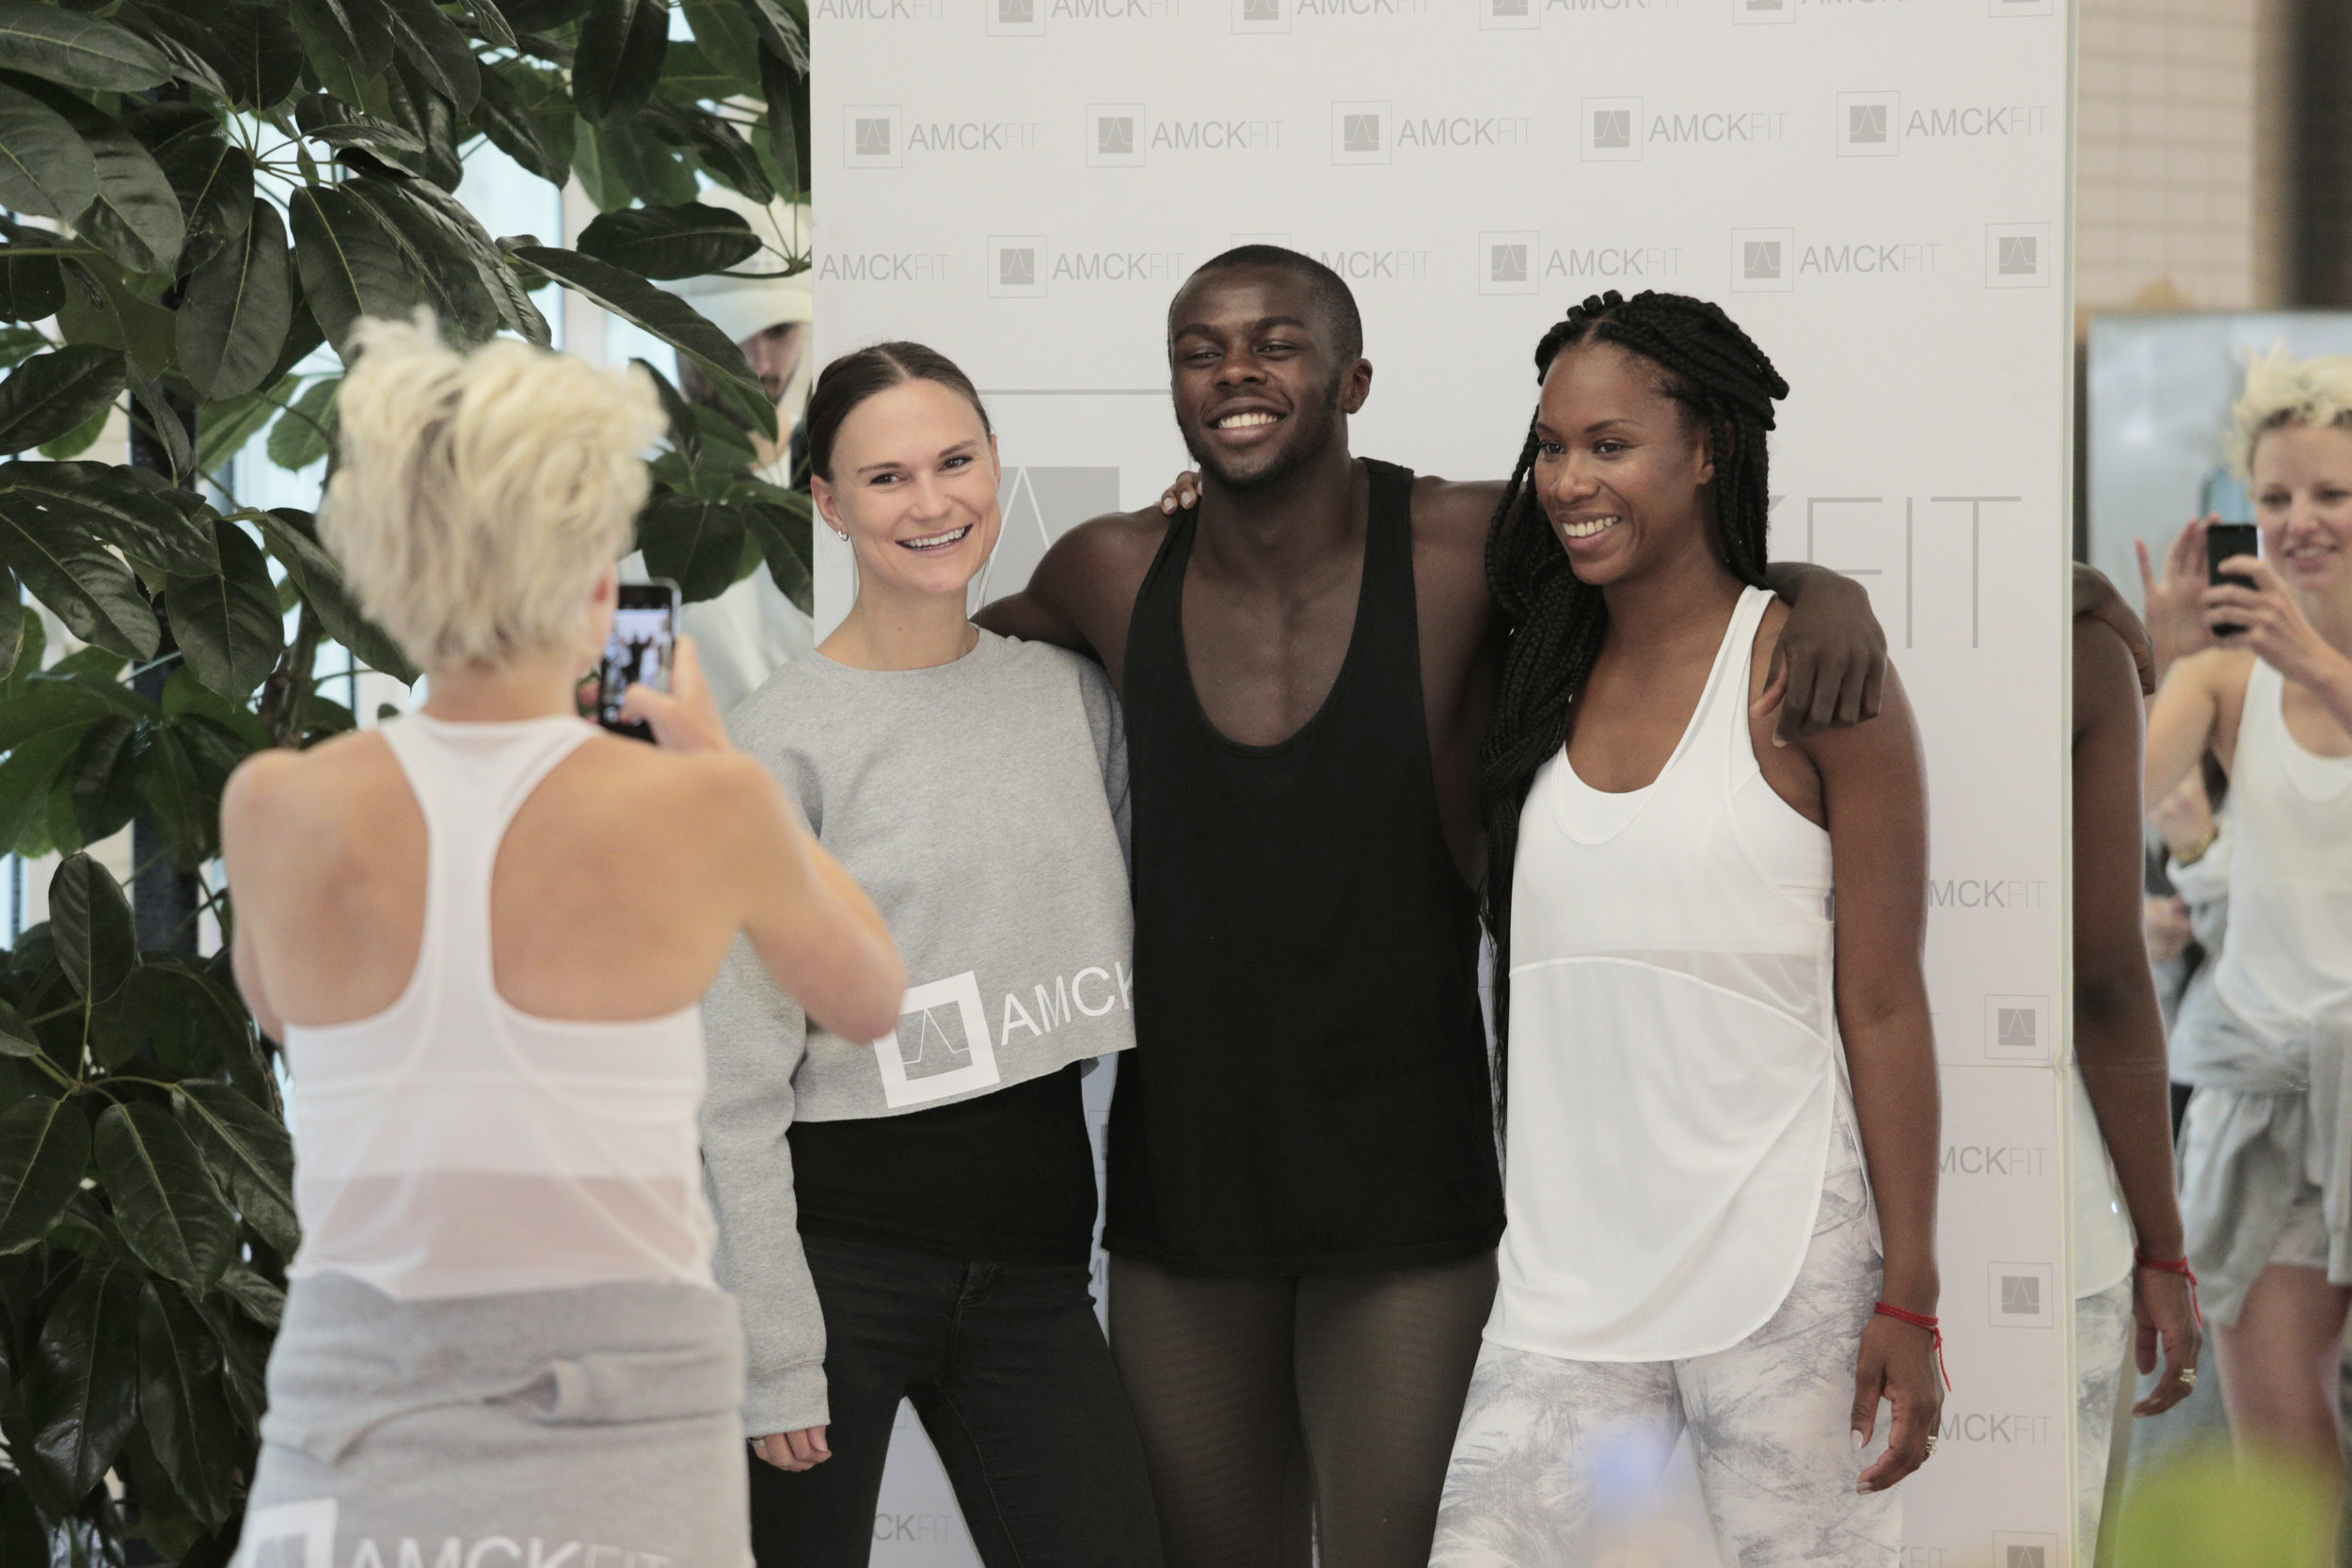 Aicha McKenzie, CEO & Director,  AMCK  (Right)  -  Kathryn Snook, Head Booker,  AMCK Dance  (left) & AMCK Talent - Shay Barclay & Ida May,  AMCK FIT